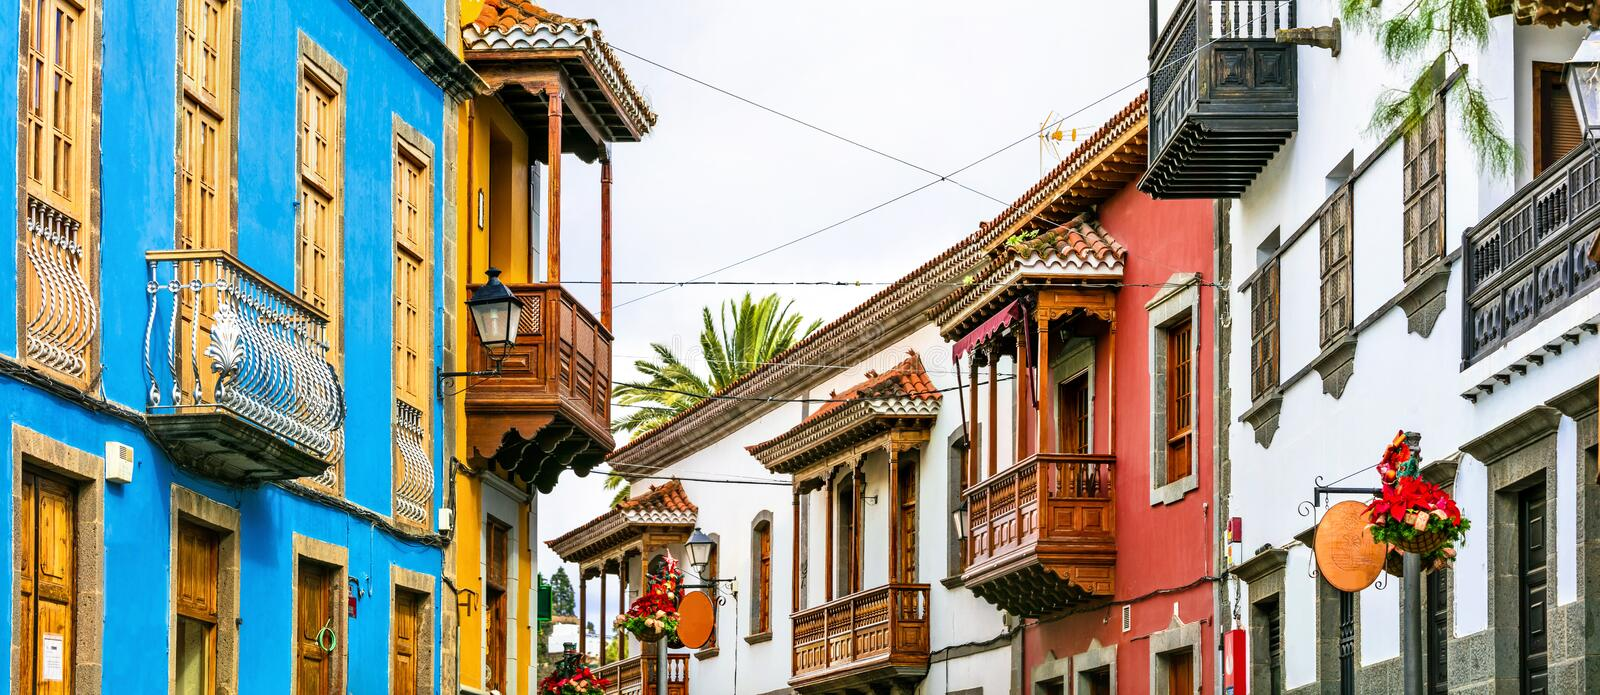 Teror - beautiful traditional town with colorful houses in Gran Canaria. Canary islands stock photo